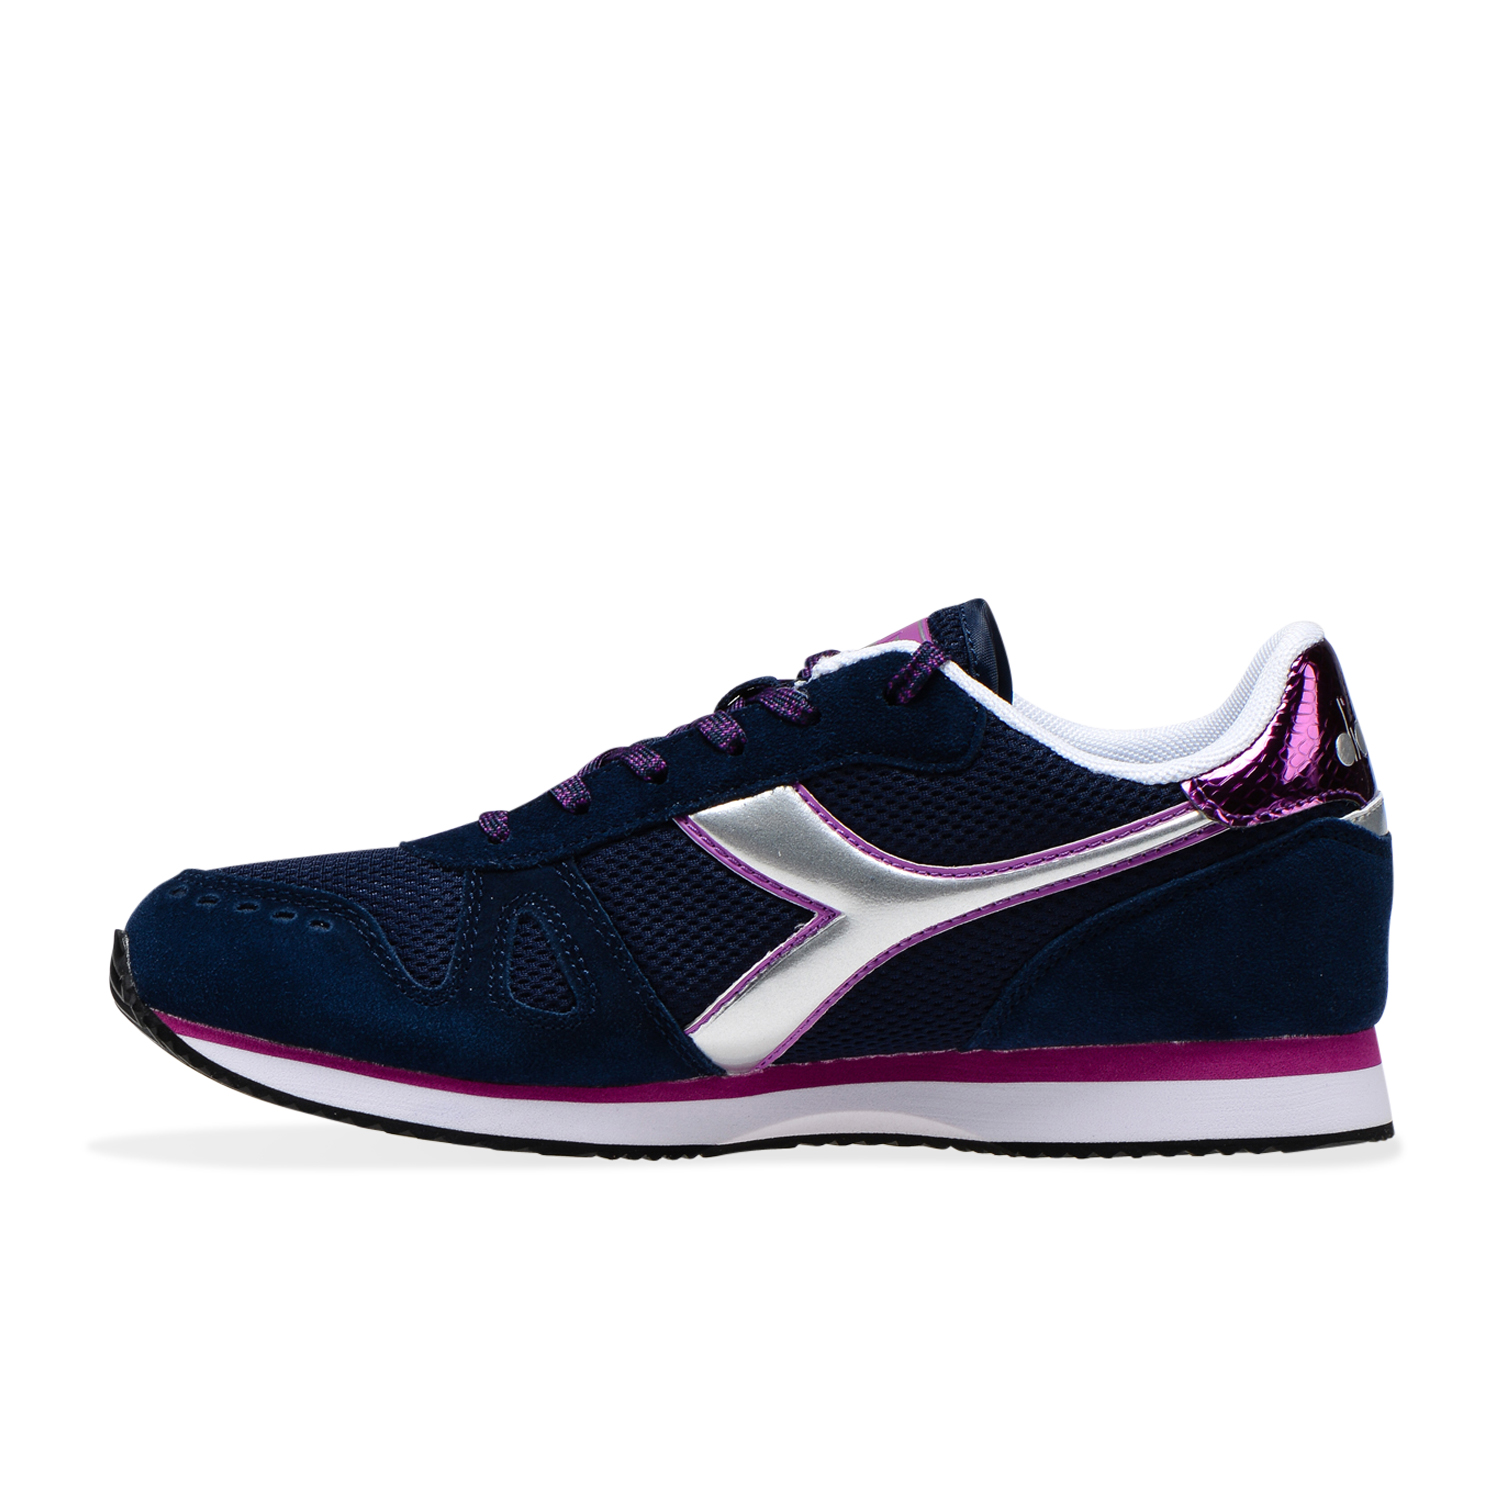 Dettagli su Diadora Sneakers SIMPLE RUN WN per donna